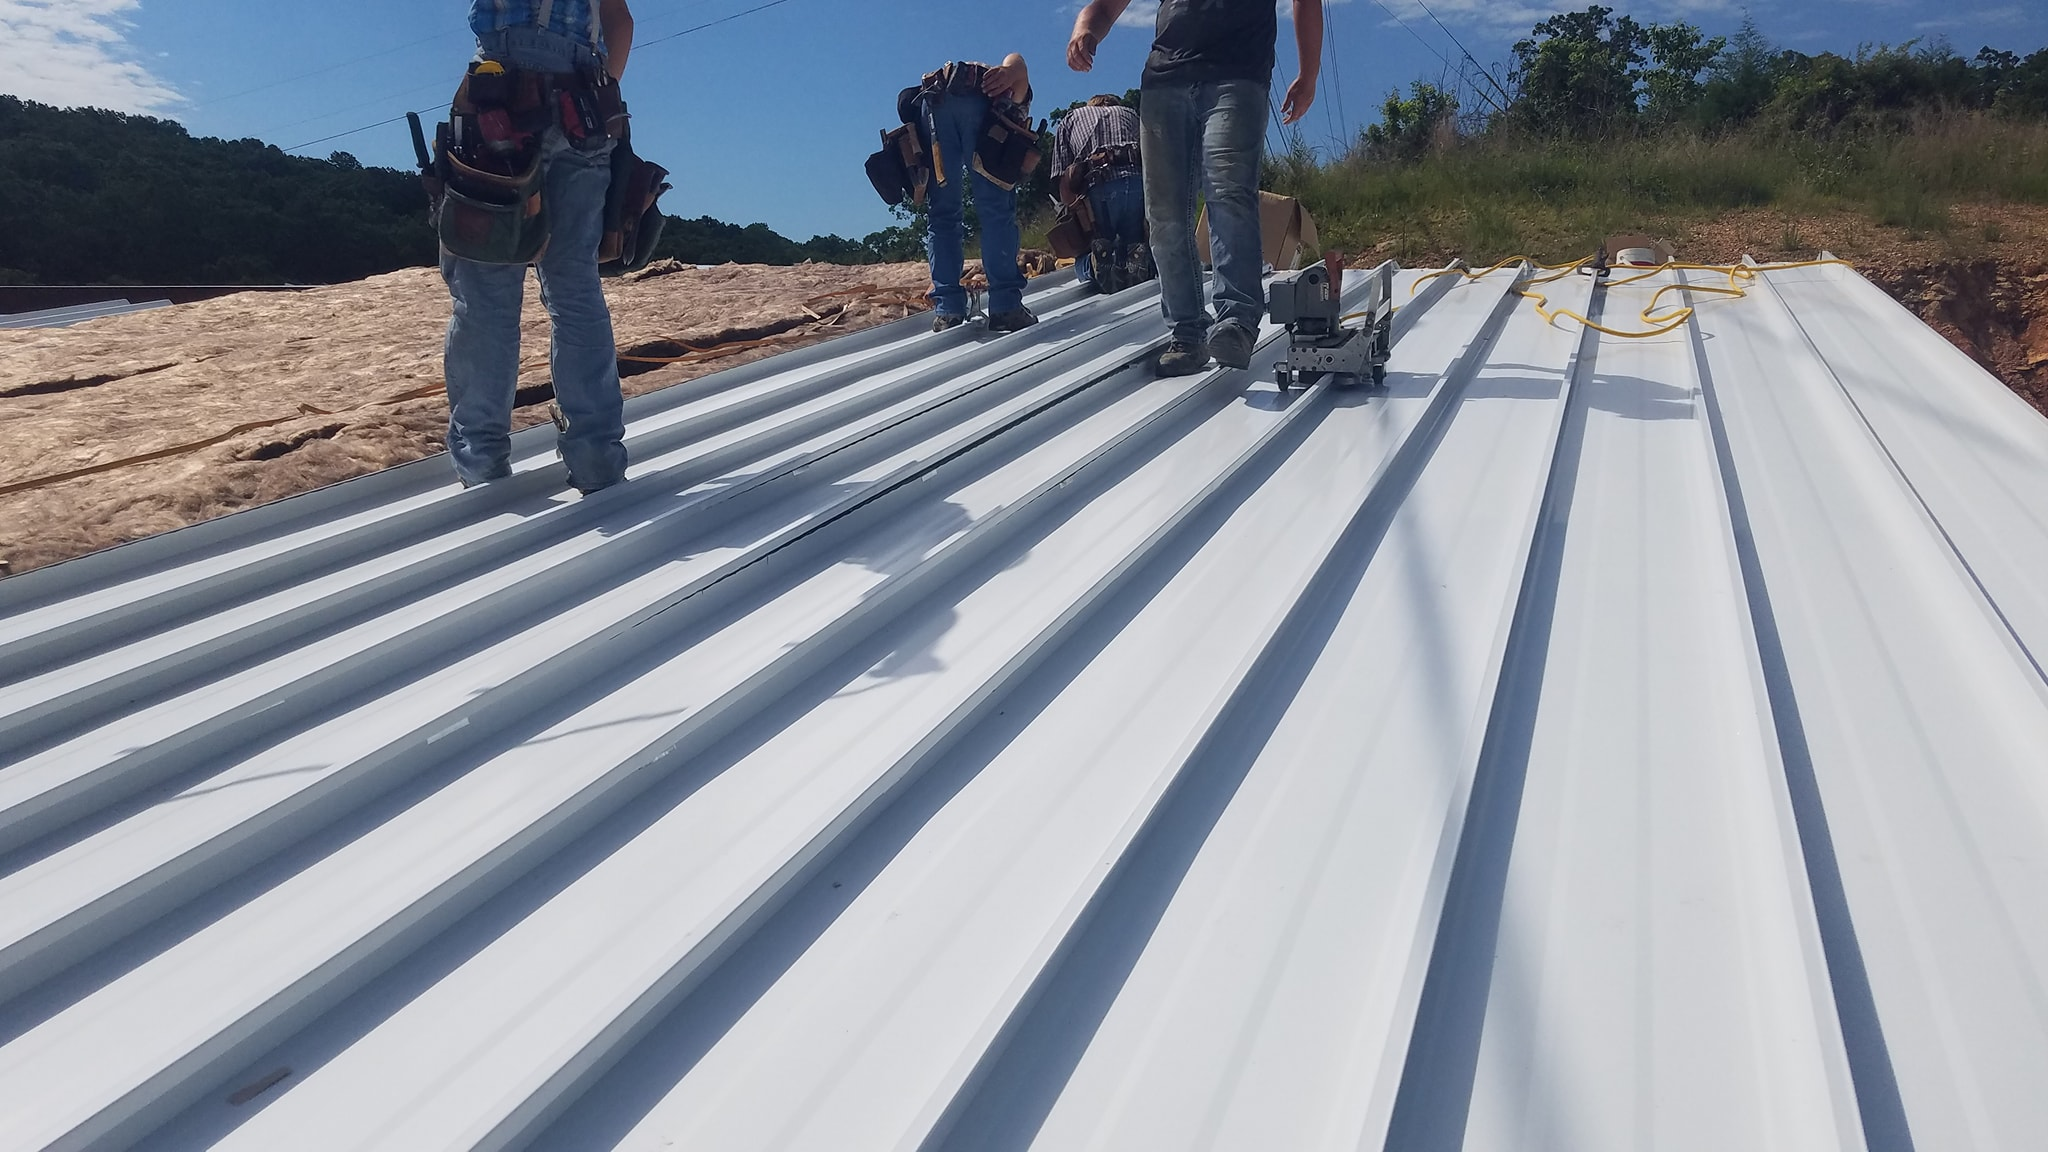 Corrugated Metal Roof or Standing Seam for Your Next Replacement?